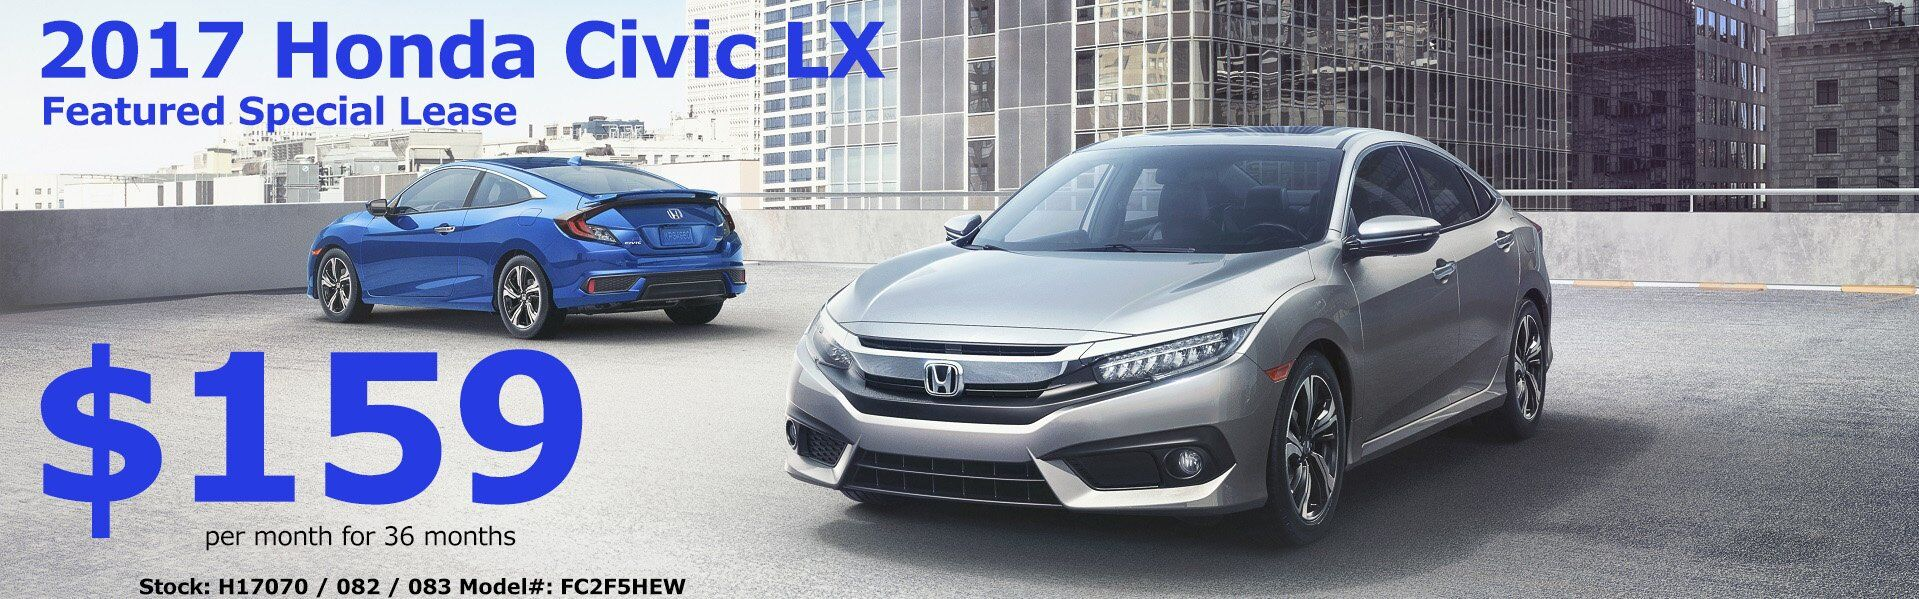 Honda dealership grants pass or used cars jim sigel honda for Honda civic lease offers